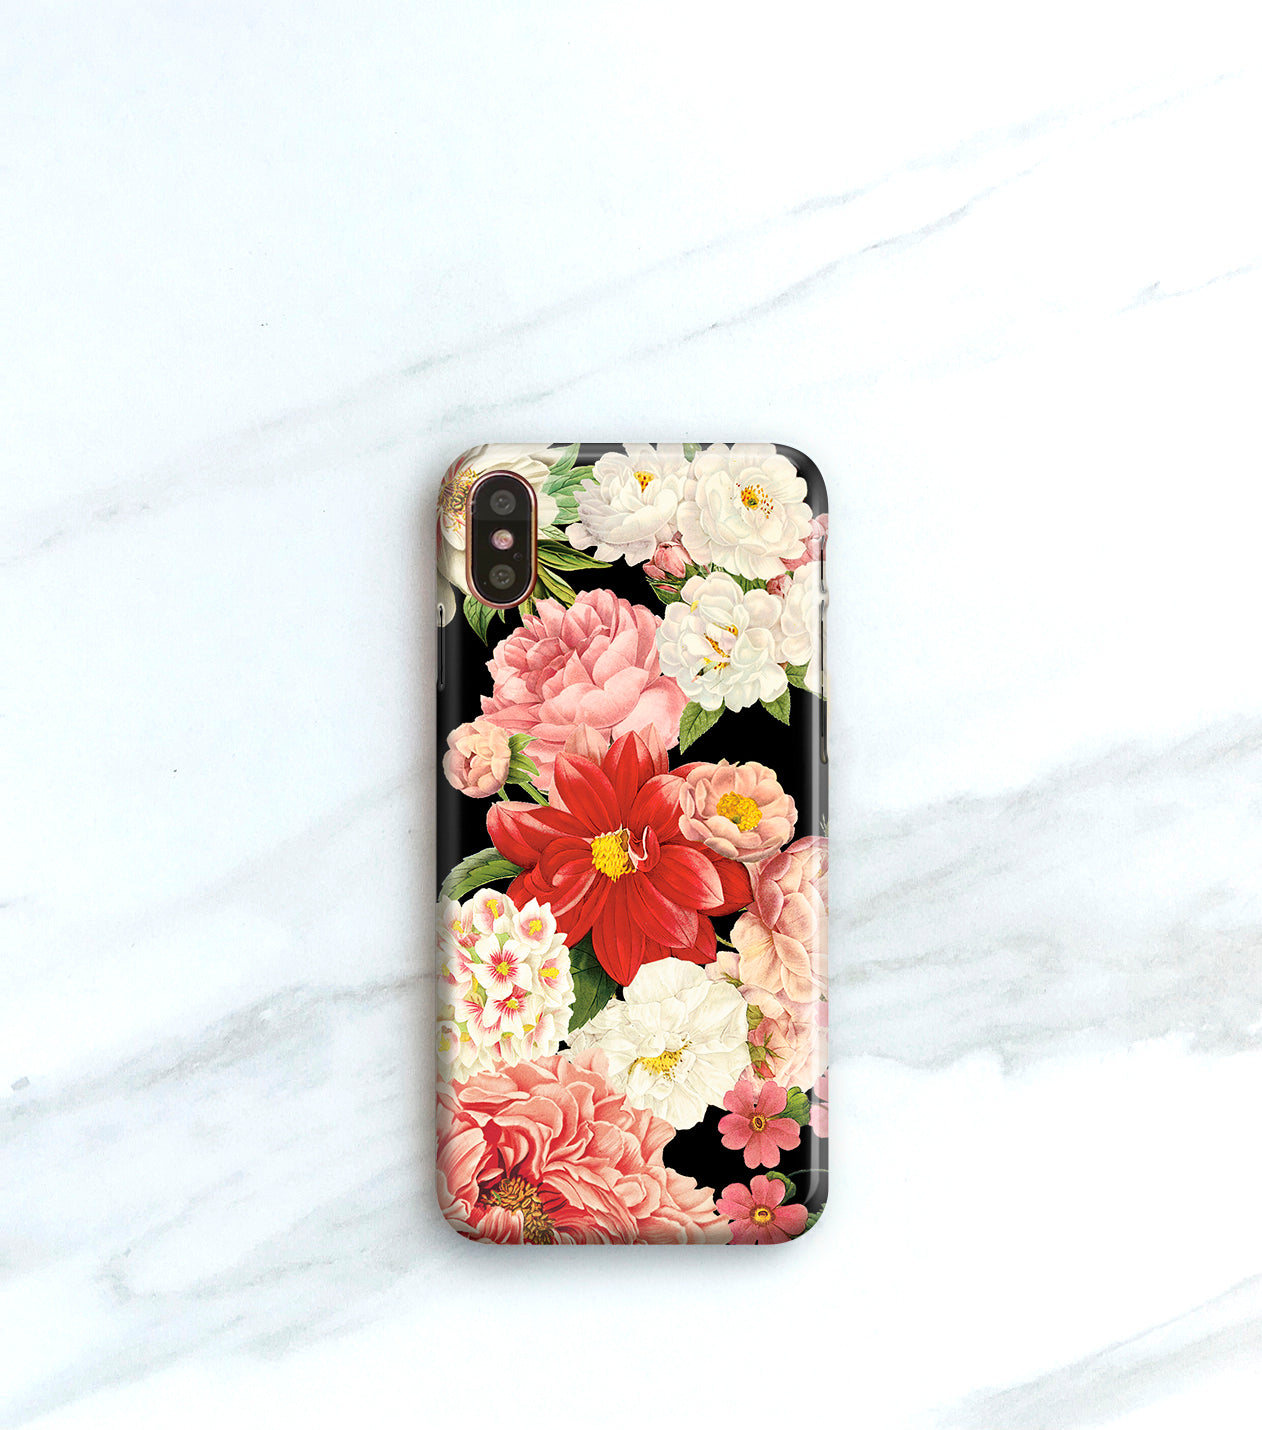 floral bunch iPhone xs max case